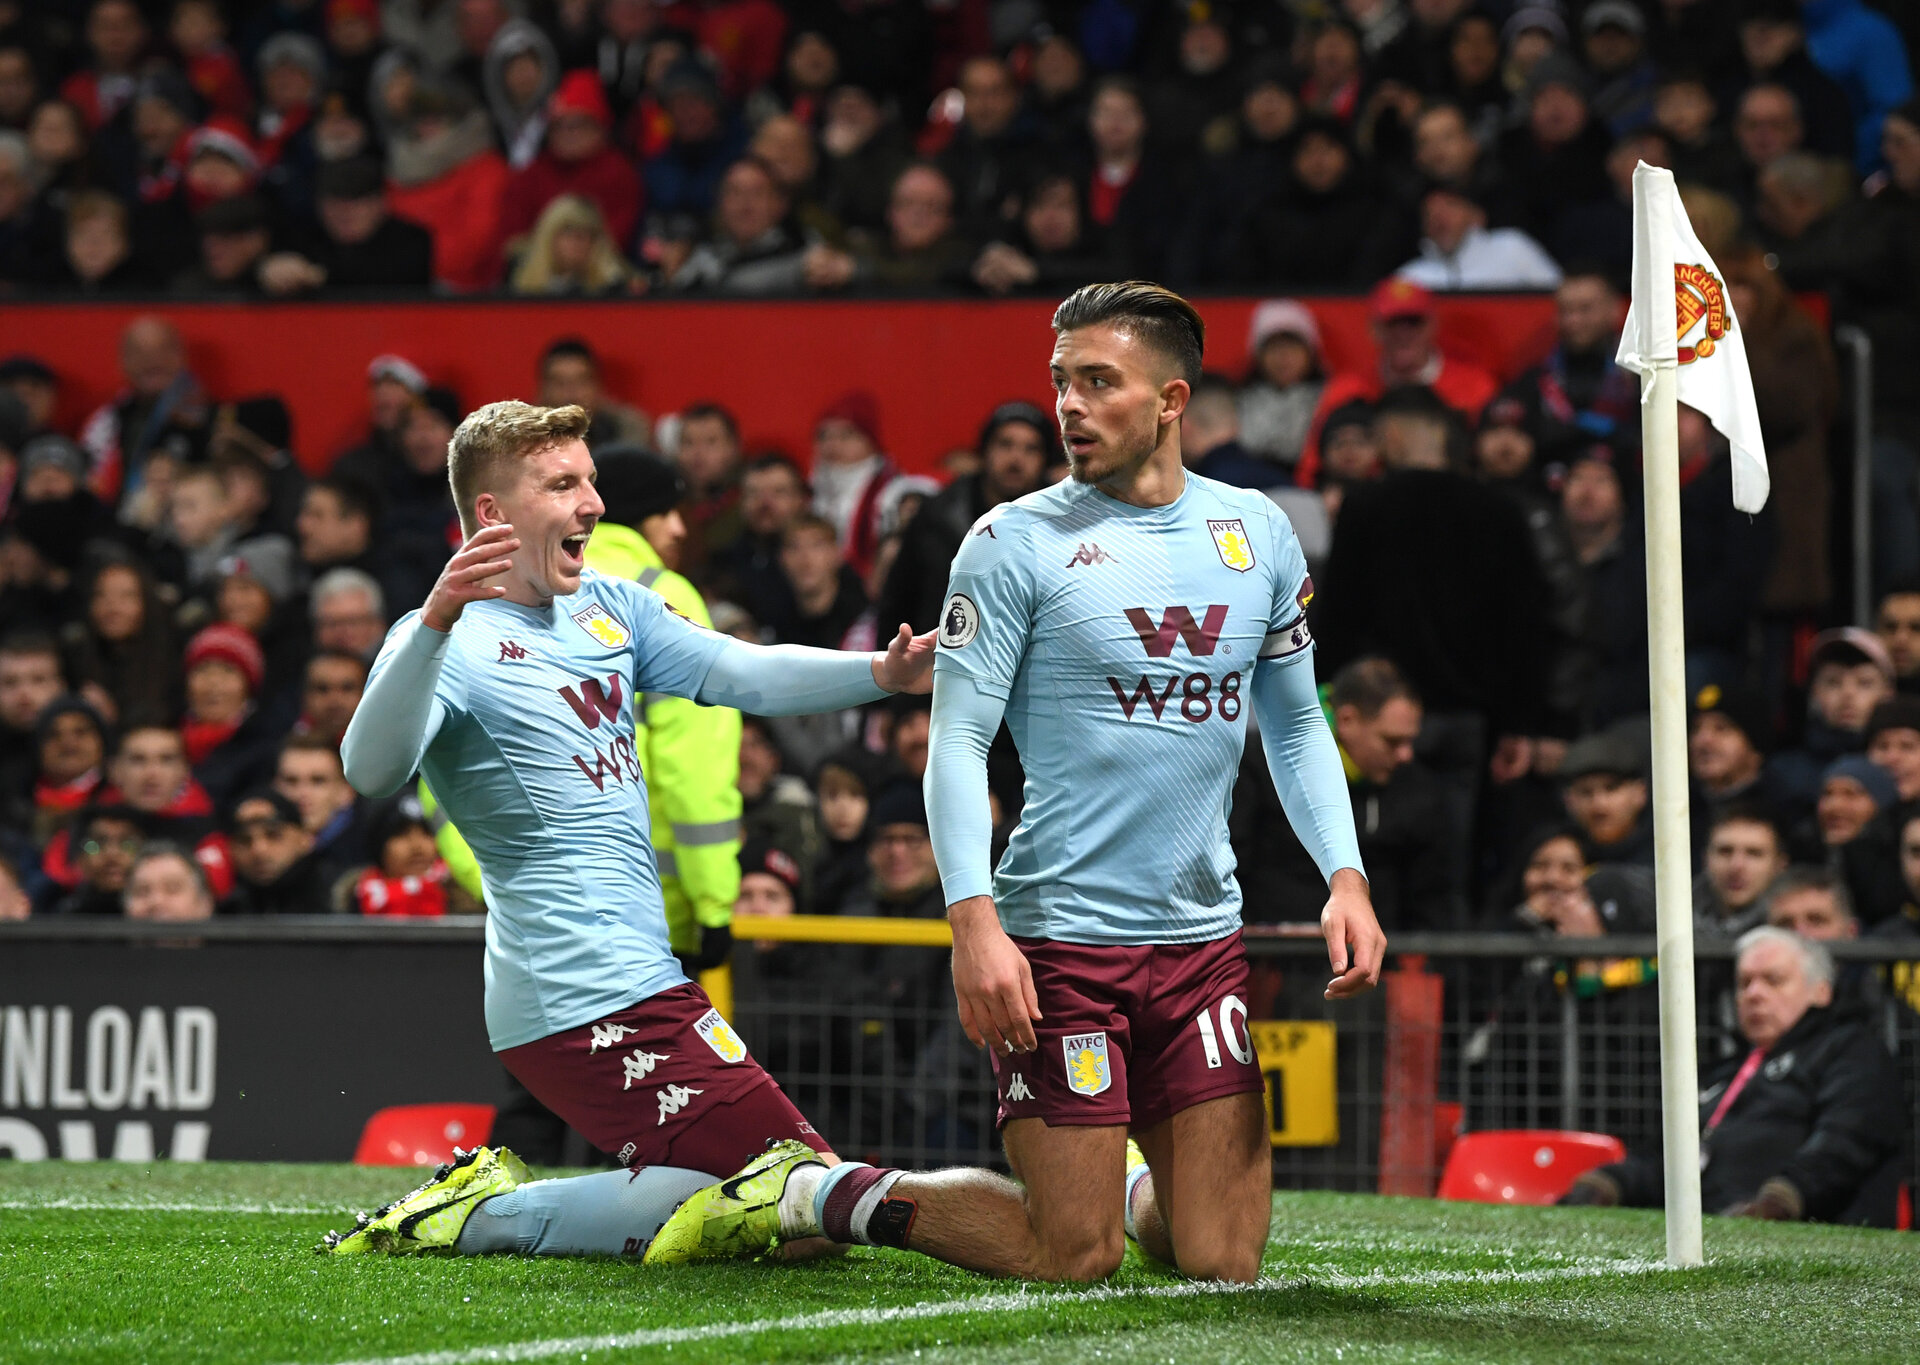 MANCHESTER, ENGLAND - DECEMBER 01: Jack Grealish of Aston Villa celebrates with his team after he scores his sides first goal during the Premier League match between Manchester United and Aston Villa at Old Trafford on December 01, 2019 in Manchester, United Kingdom. (Photo by Stu Forster/Getty Images)